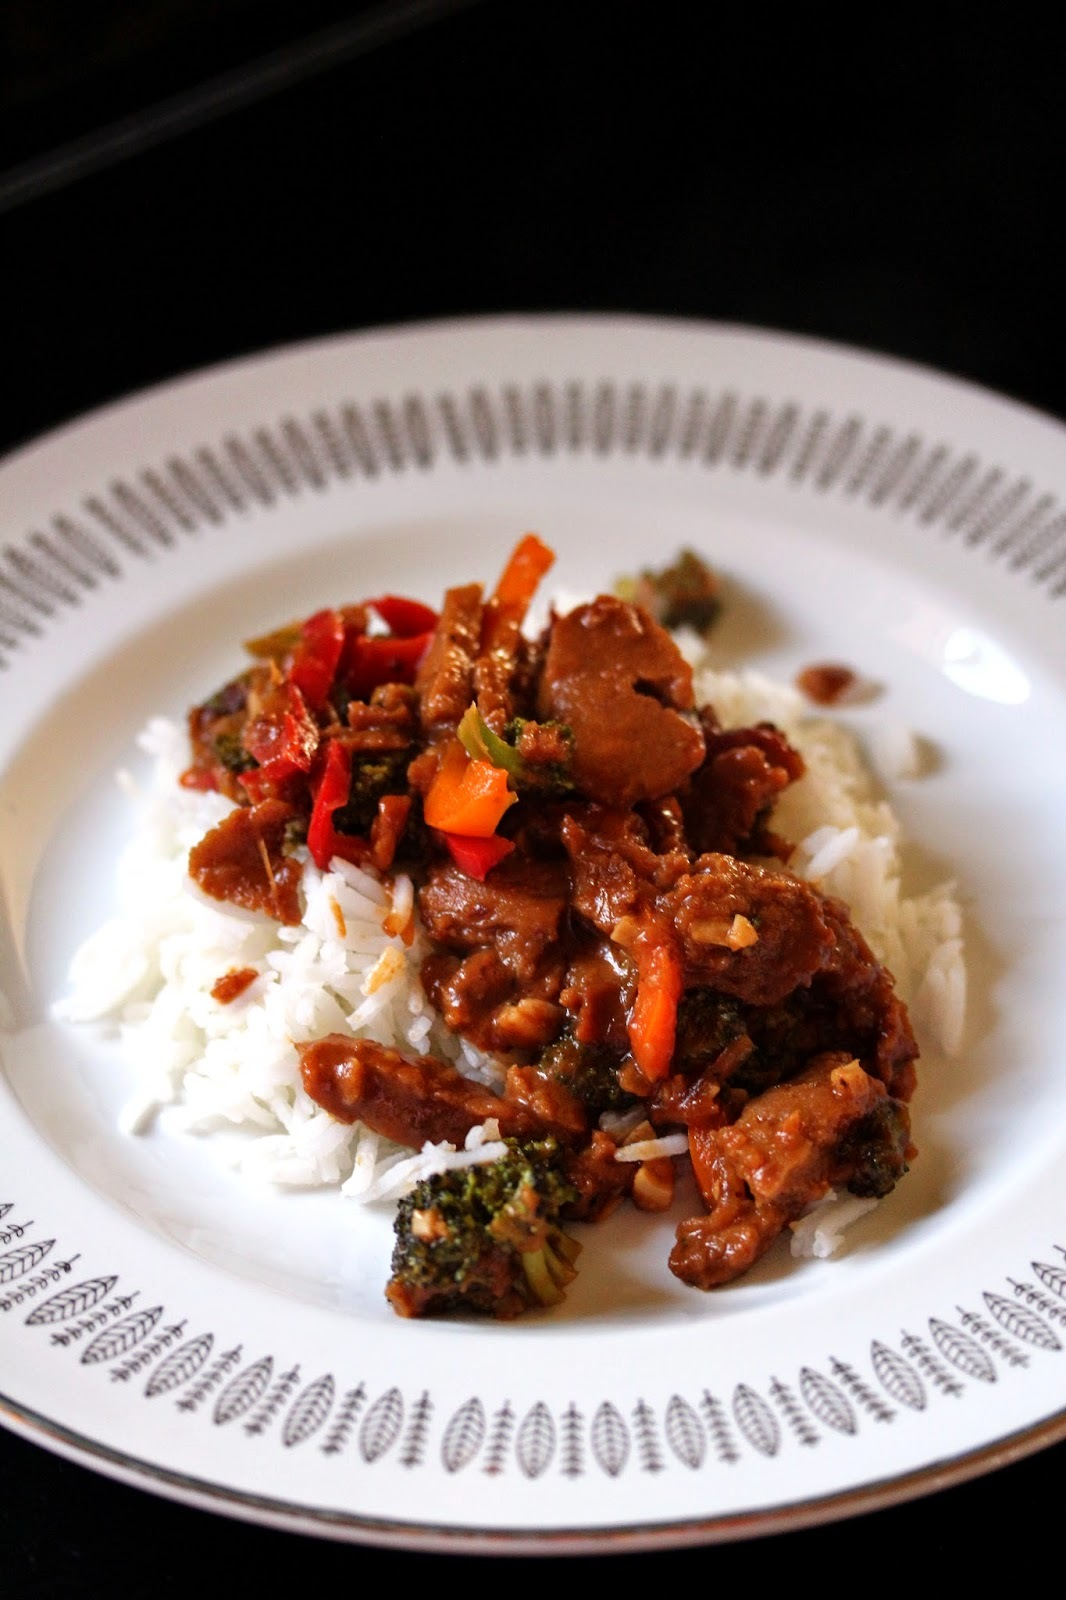 Broccoli, Pepper, and Seitan Stir-Fry over Basmati Rice